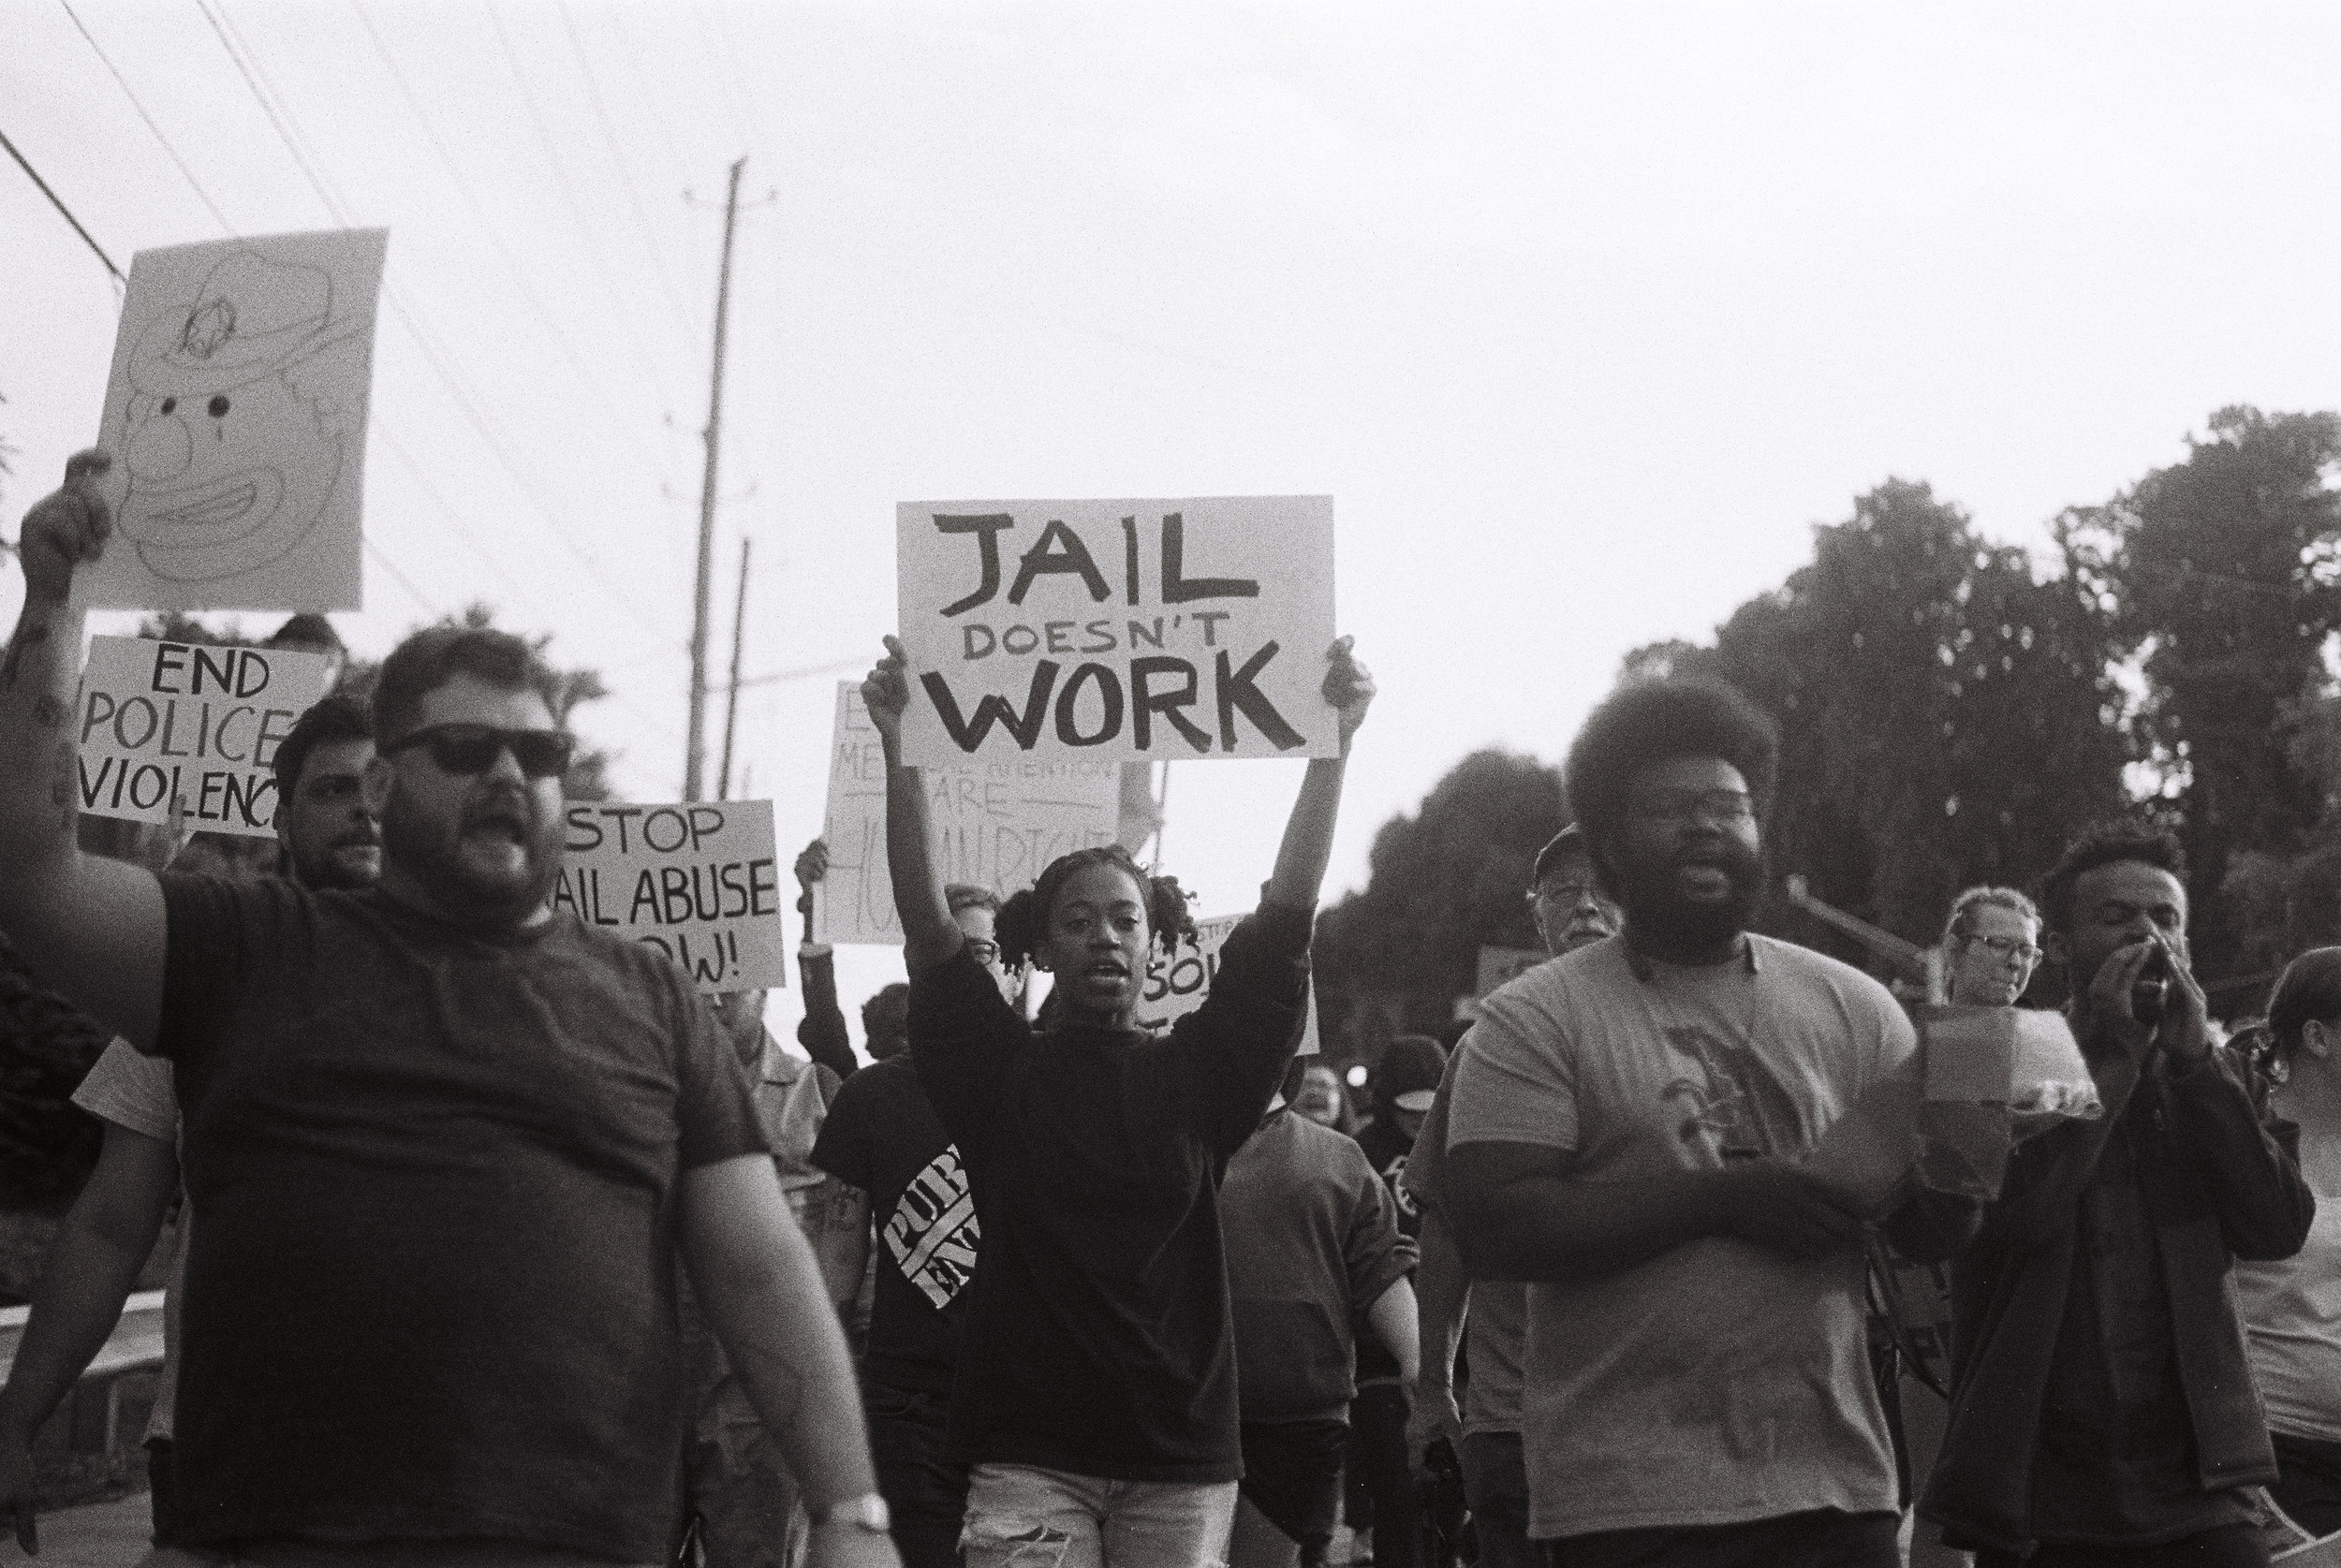 Dekalb Jail Protest. May 15, 2019. Shot on TriX BW film with an Olympus OM-1.